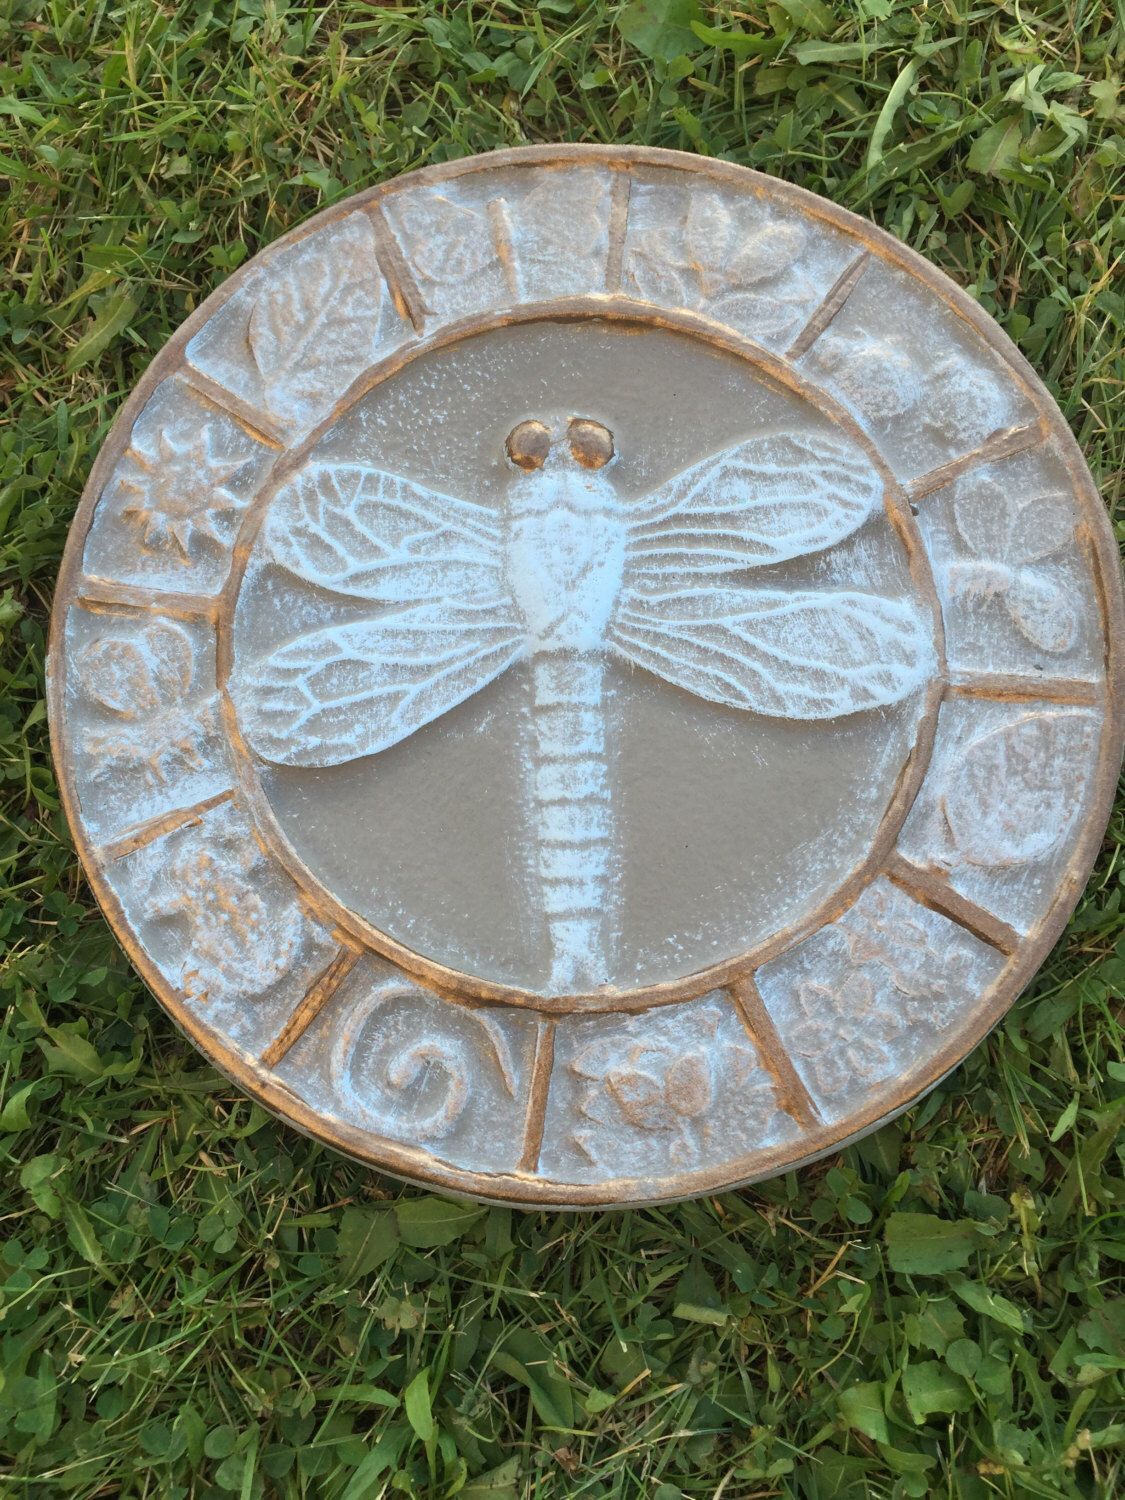 12 Inch Round Hand Painted Concrete Dragonfly And Symbol Stepping Stone Painting Concrete Hand Painted Painting